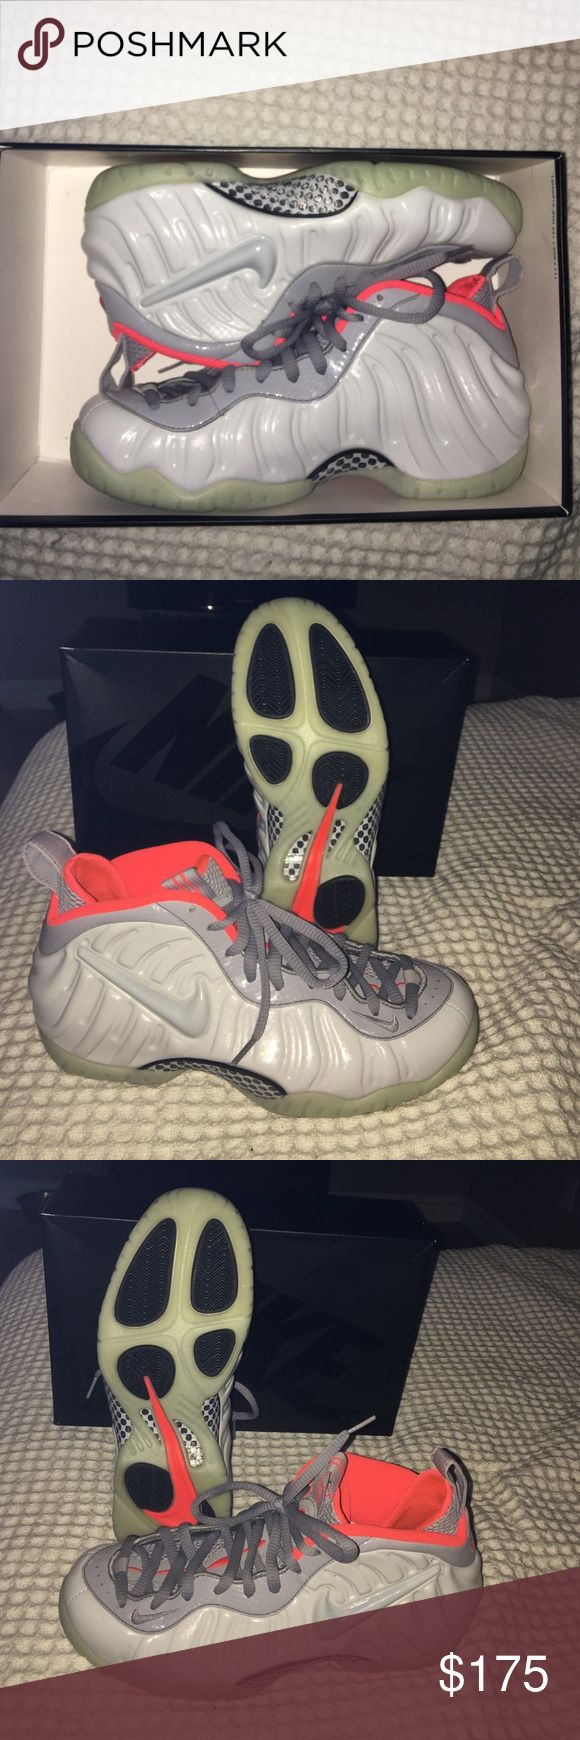 Air Foamposite Pro Prm Mens size 8, comes with original box. Worn a few times but still in great condition! $ look above for asking price OBO message me if interested can negotiate. Nike Shoes Sneakers